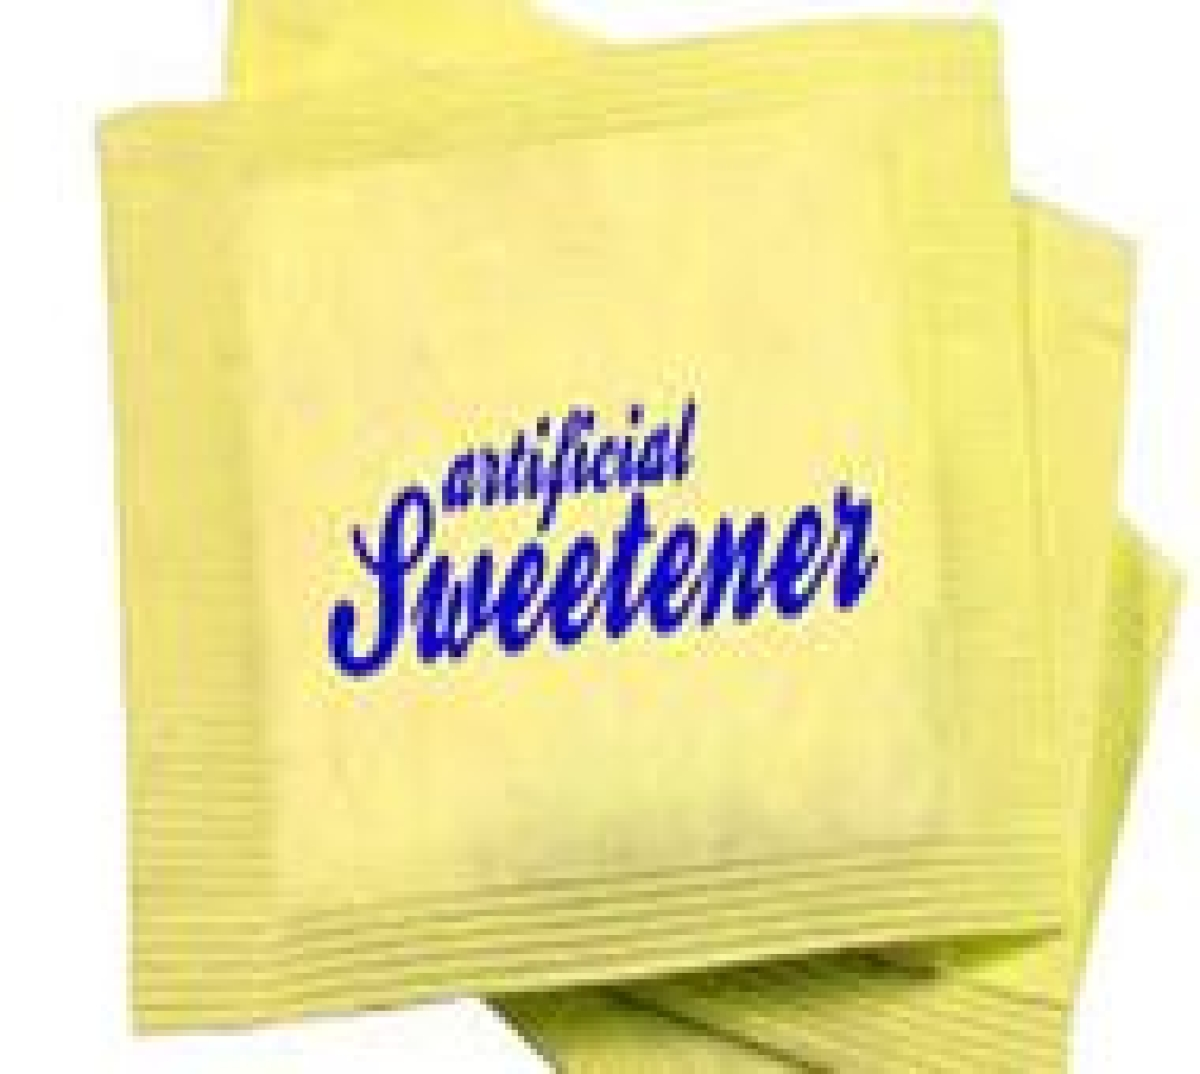 Beware! Artificial sweeteners may harm your health